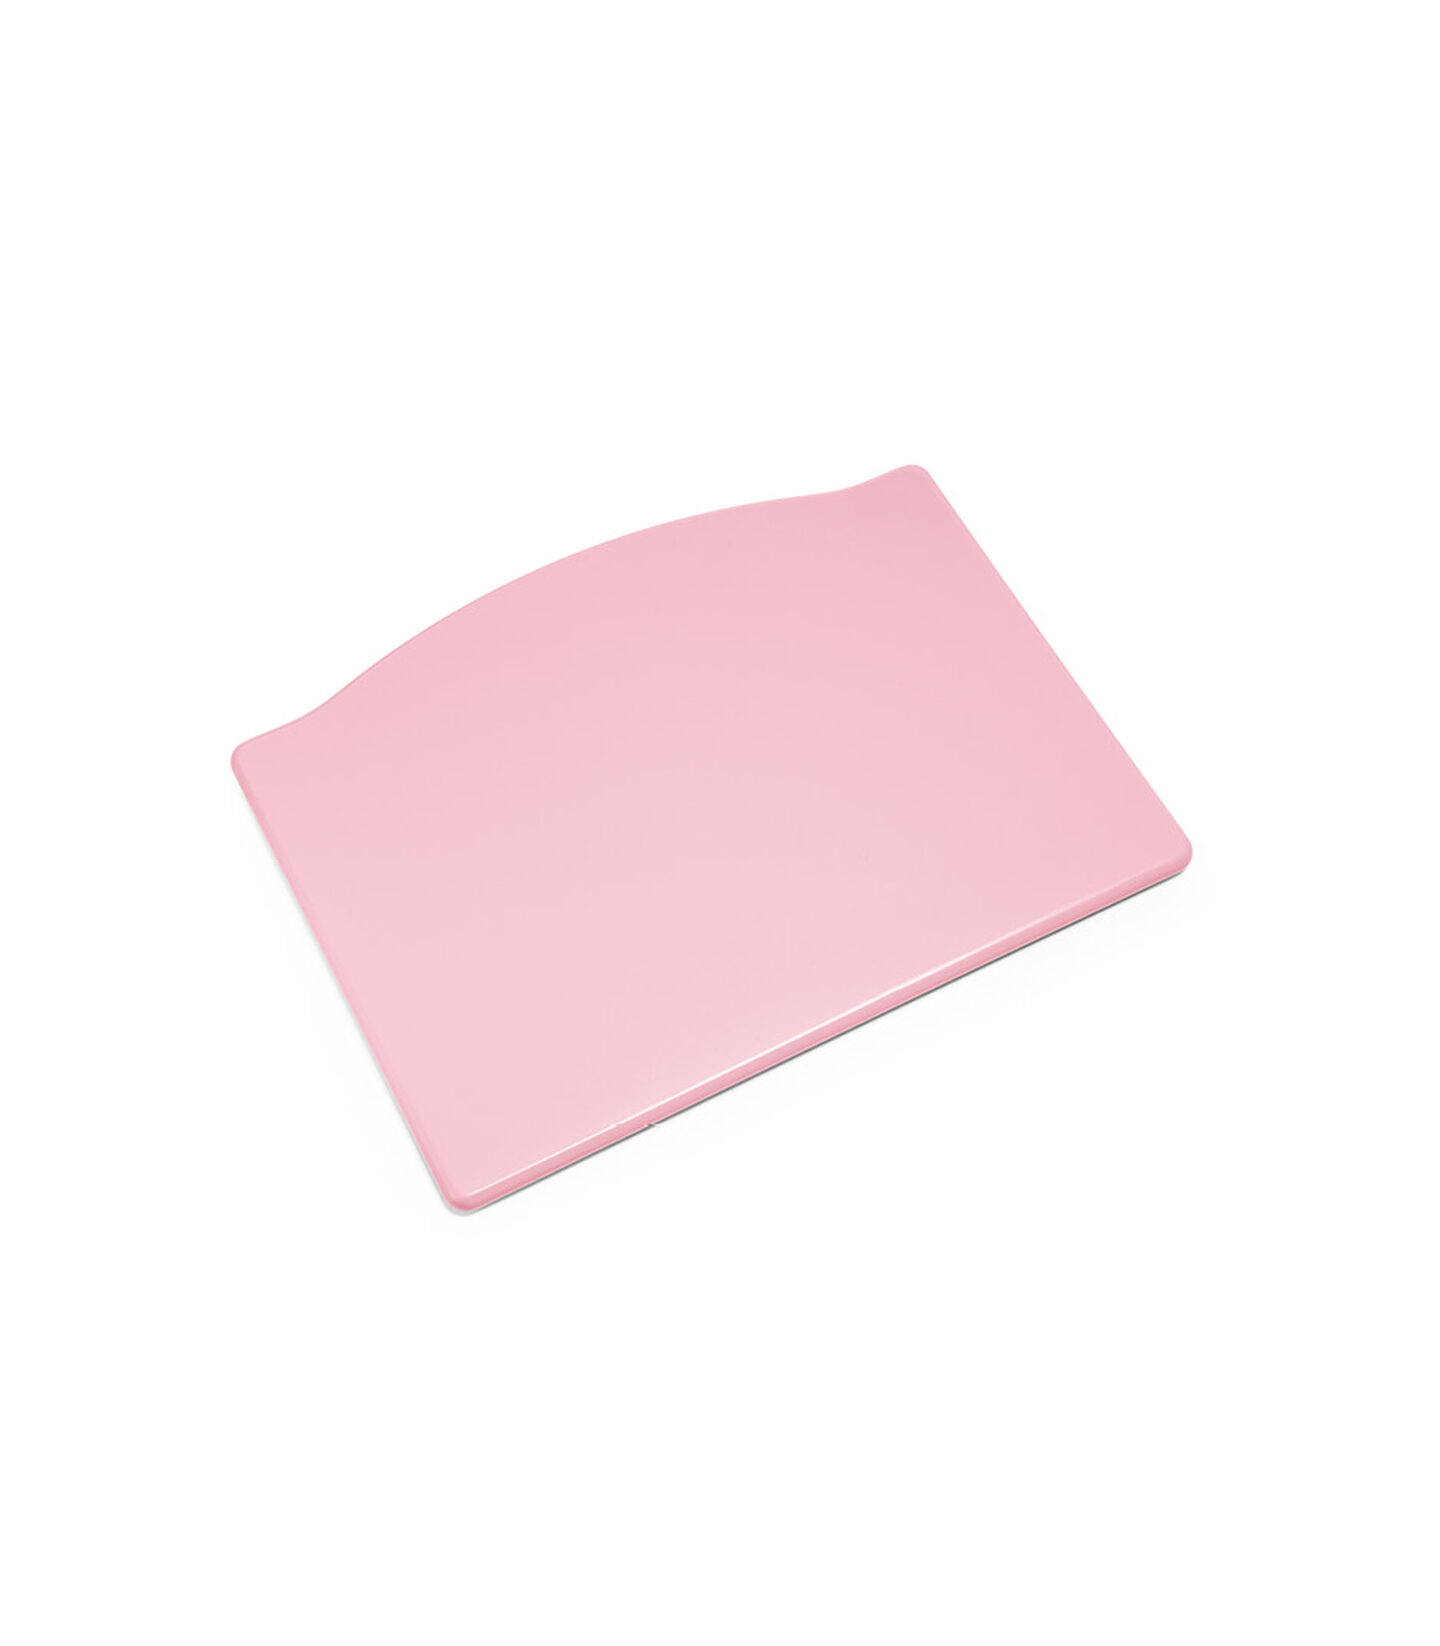 Tripp Trapp® Footplate Soft Pink, Soft Pink, mainview view 1